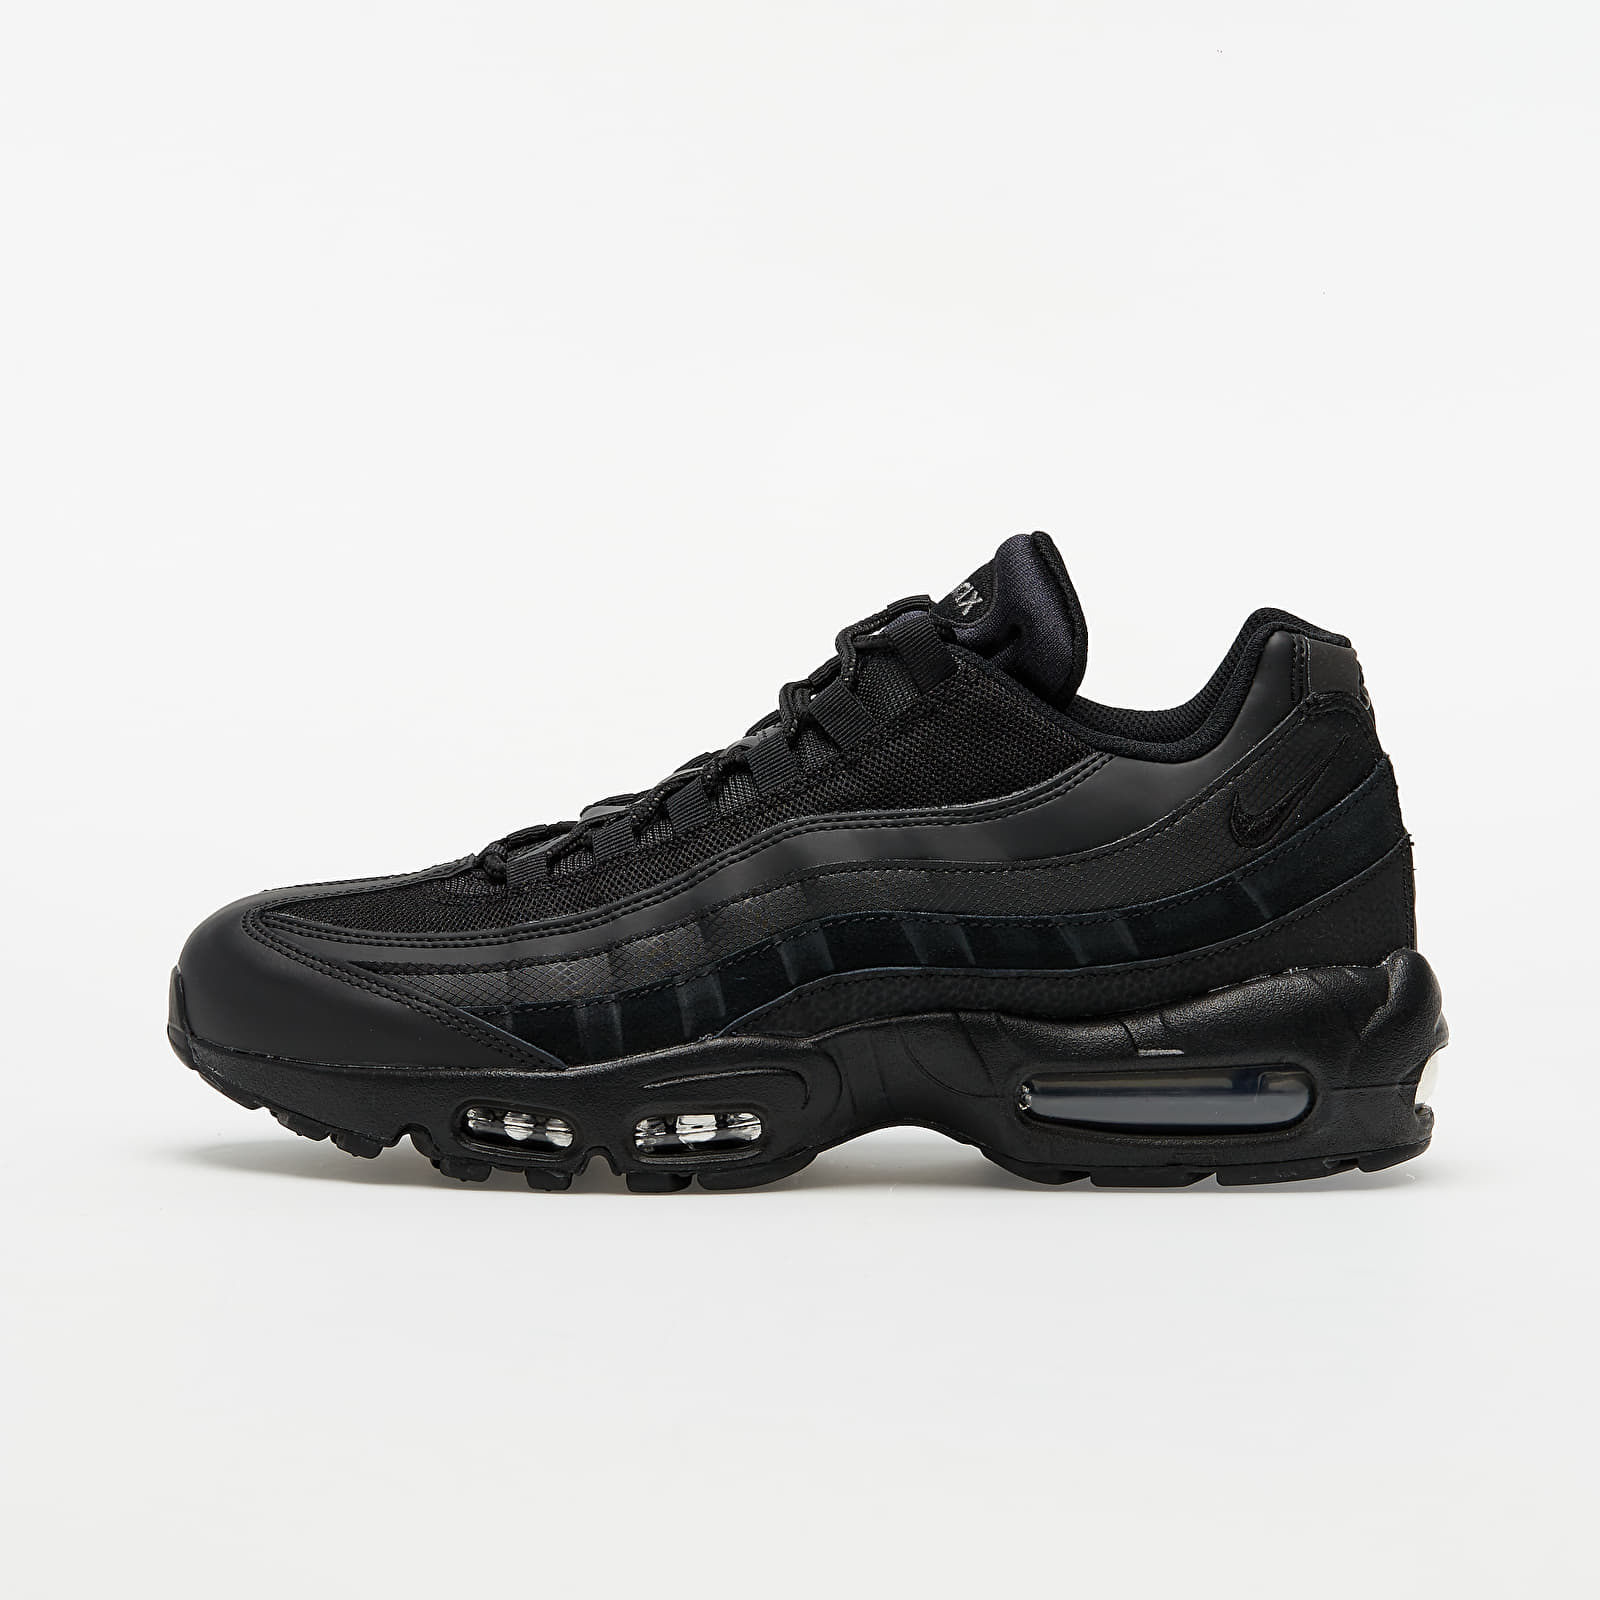 Nike Air Max 95 Essential Black/ Black-Dark Grey EUR 42